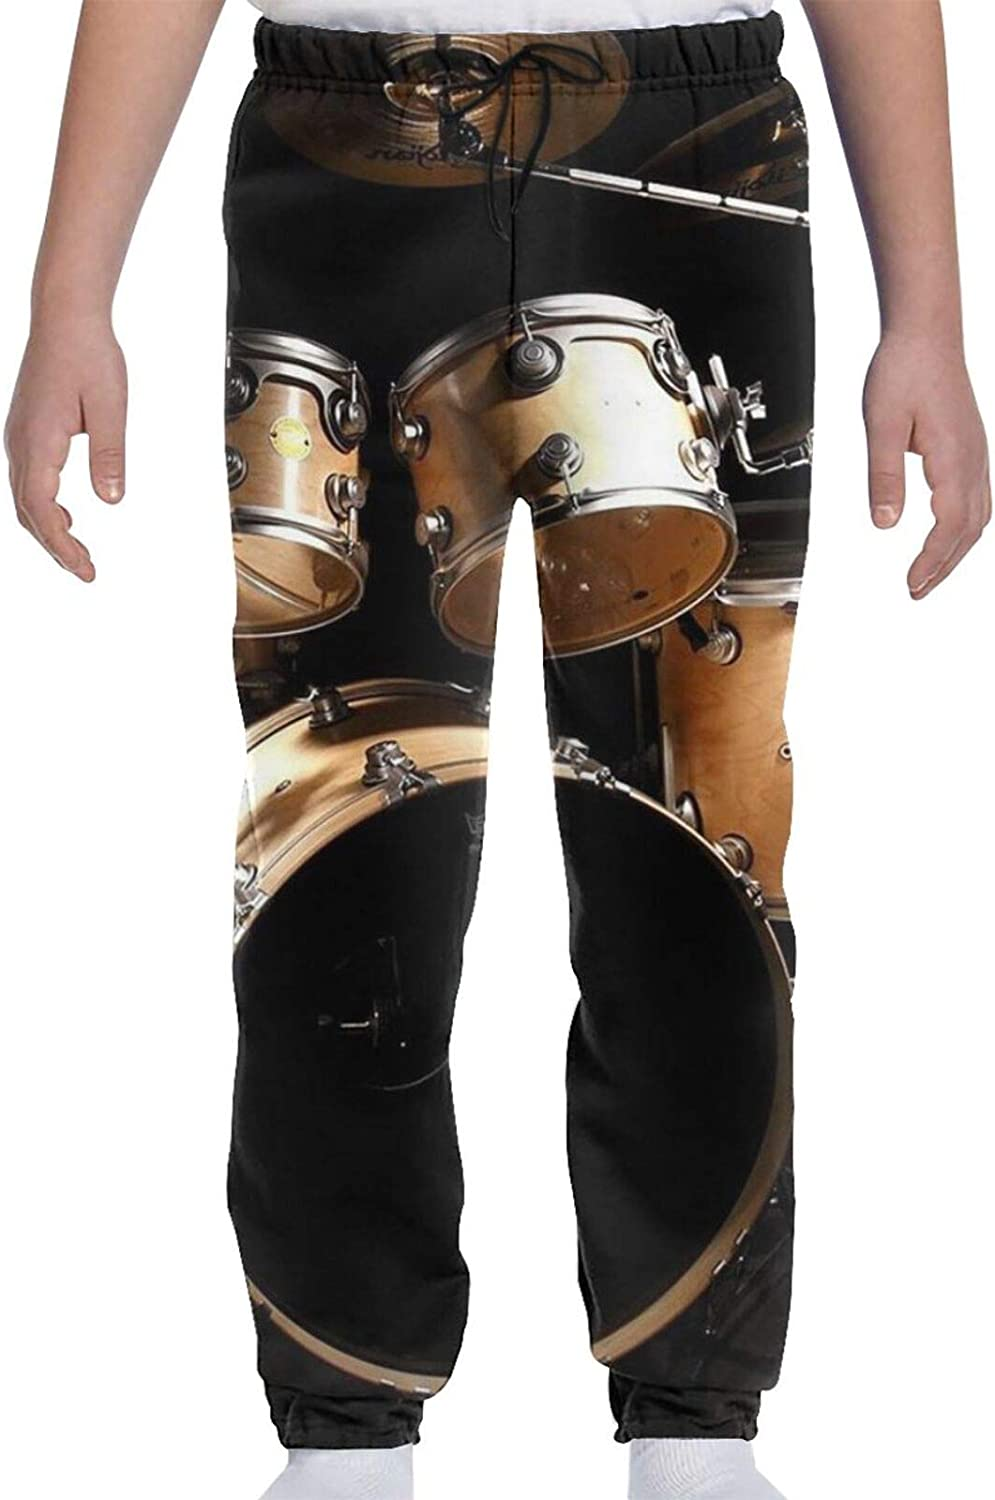 Max 53% OFF Monkey Toy Popular brand in the world Youth Sweatpants 3D Girls Teens Trousers Boys Print